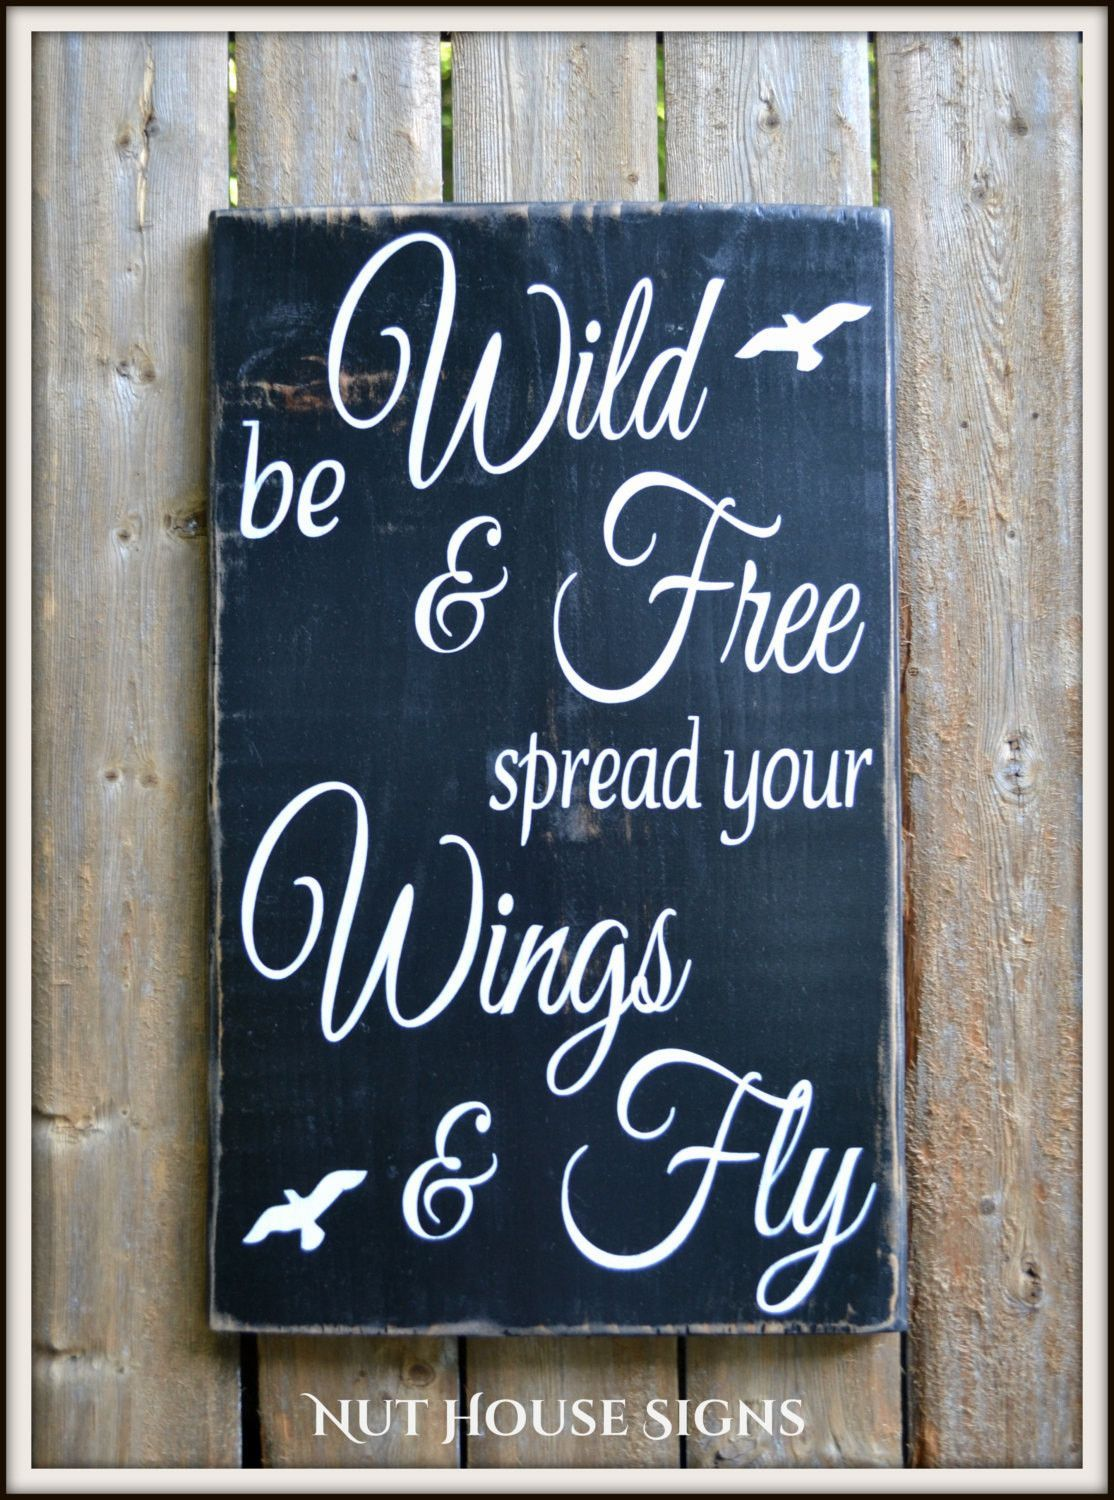 Inspirational Quotes On Wood: Inspirational Wood Sign Hand Painted Be Wild And Free